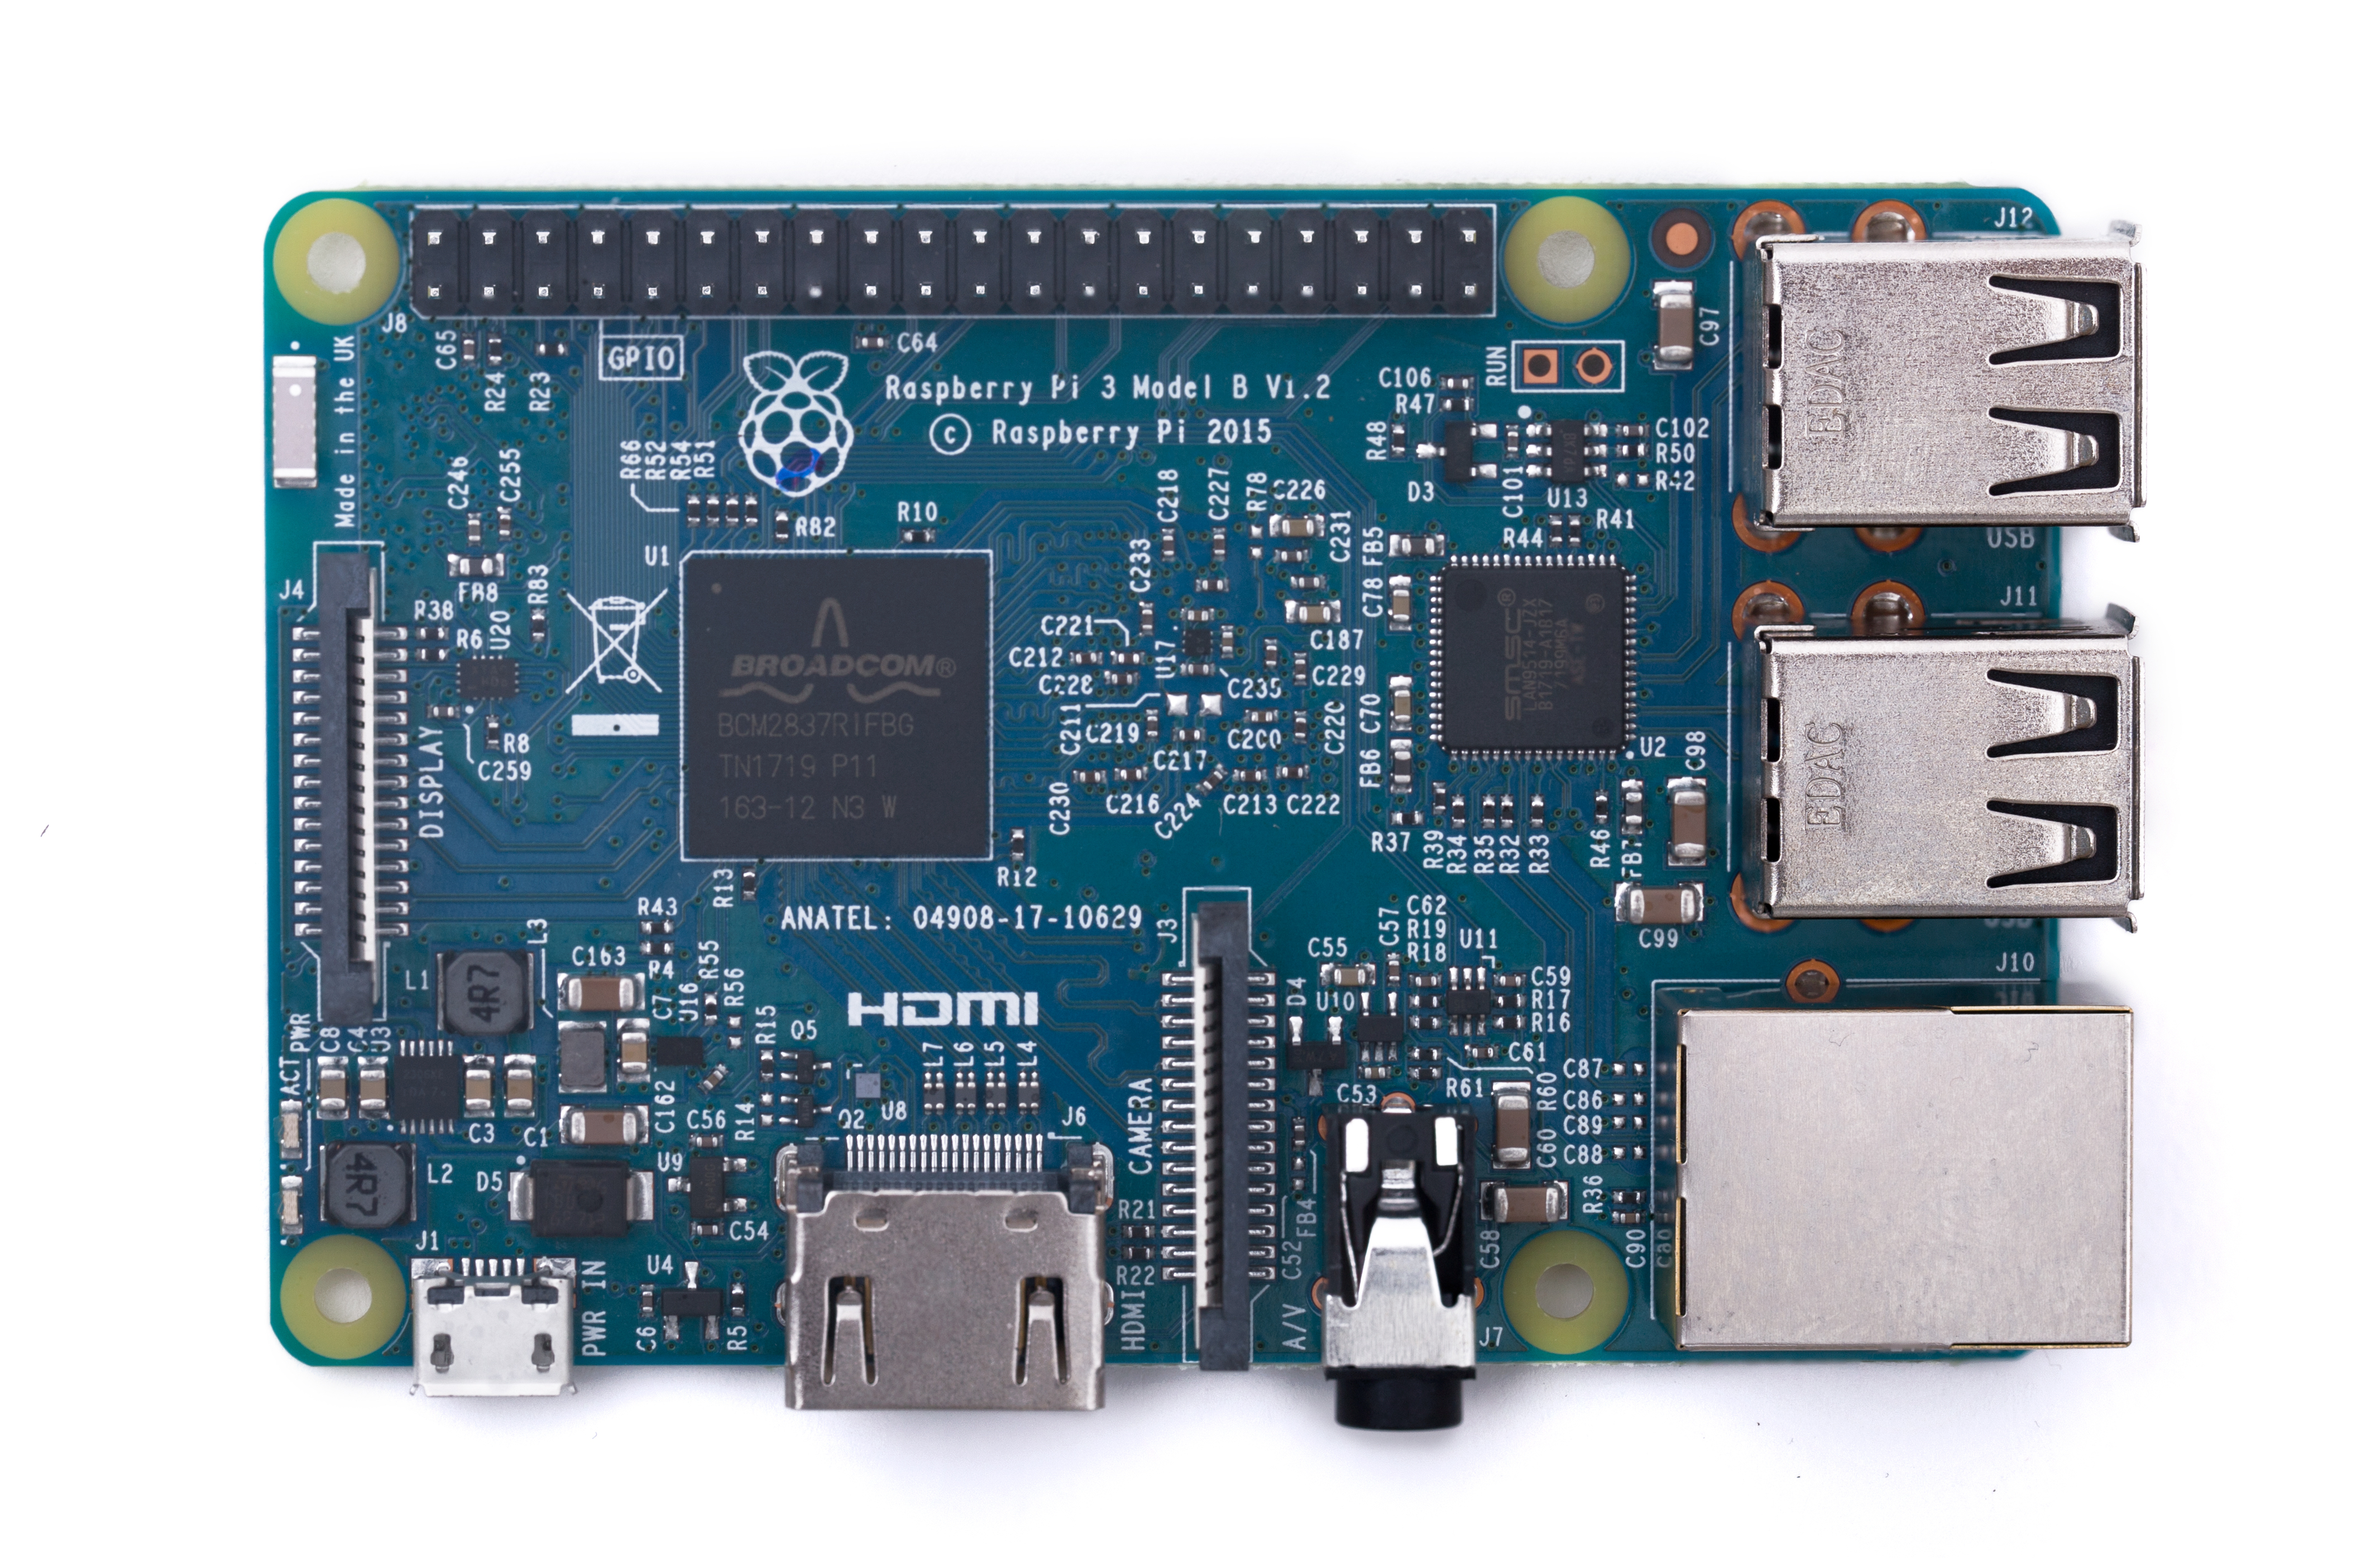 A photo of the blue-variant Raspberry Pi 3